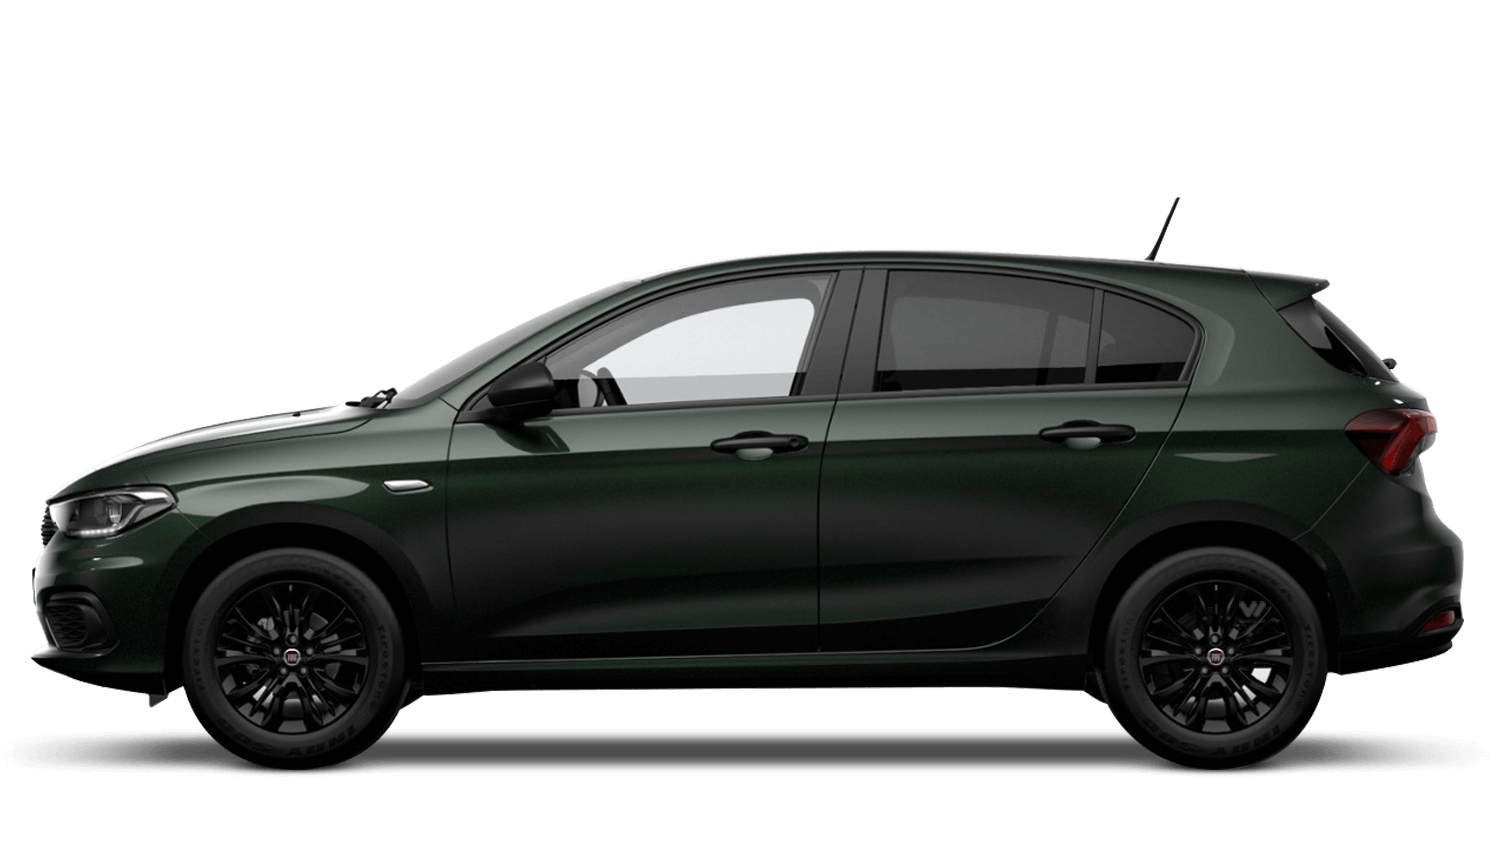 Tuscany Green (Metallic) FIAT Tipo Hatchback